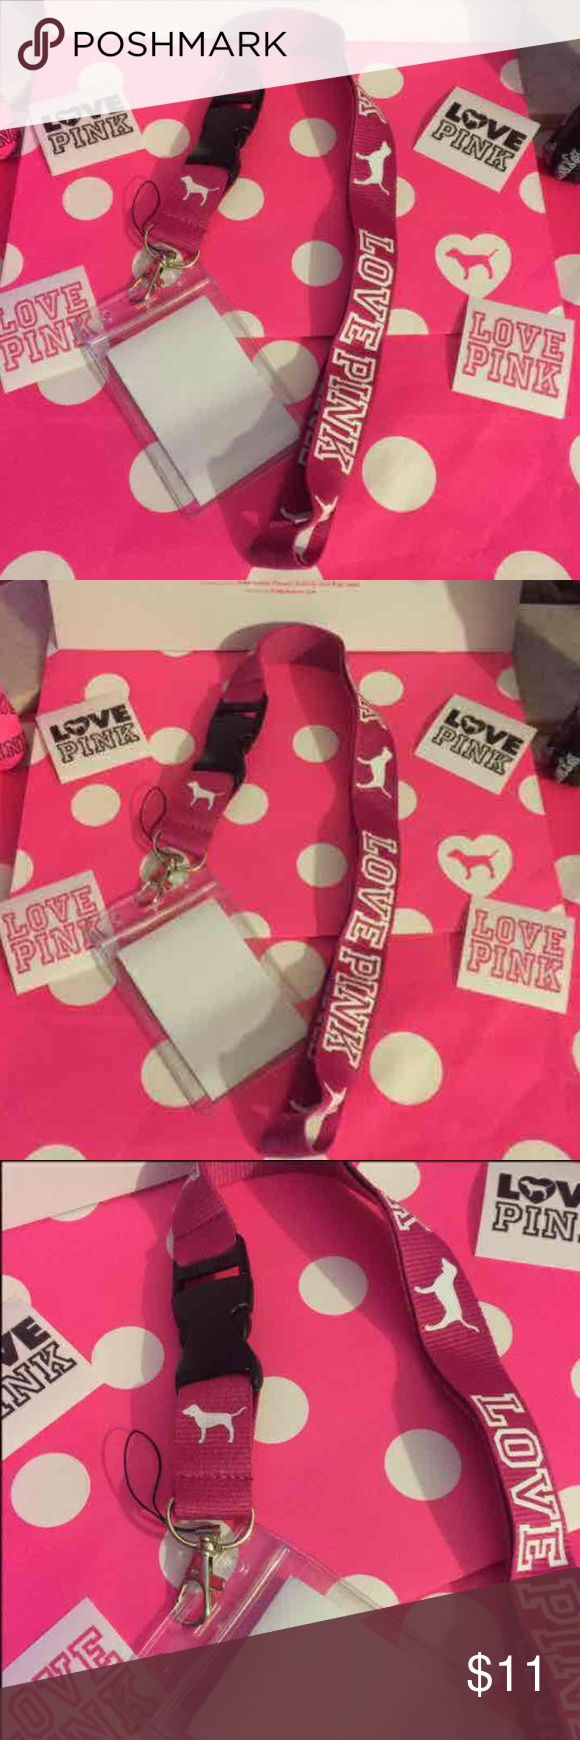 "Brand new Victoria secret lanyard & id holder 😘💋 New Victoria secret lanyard Hot pink  and white  With waterproof wallet ID holder clear both are brand-new never used      ❌NO ""lowest""/NO lowballing, No free shipping sorry ! Firm on price ❤️       Check my other items    Miss me  Rock revival  Victoria Secret  Pink  Vs  Michael kors  True religion  Tiffany and co  And more     ✅Ship same day ;).   Price is firm ❤️ lowest ❤️ PINK Victoria's Secret Bags Wallets"